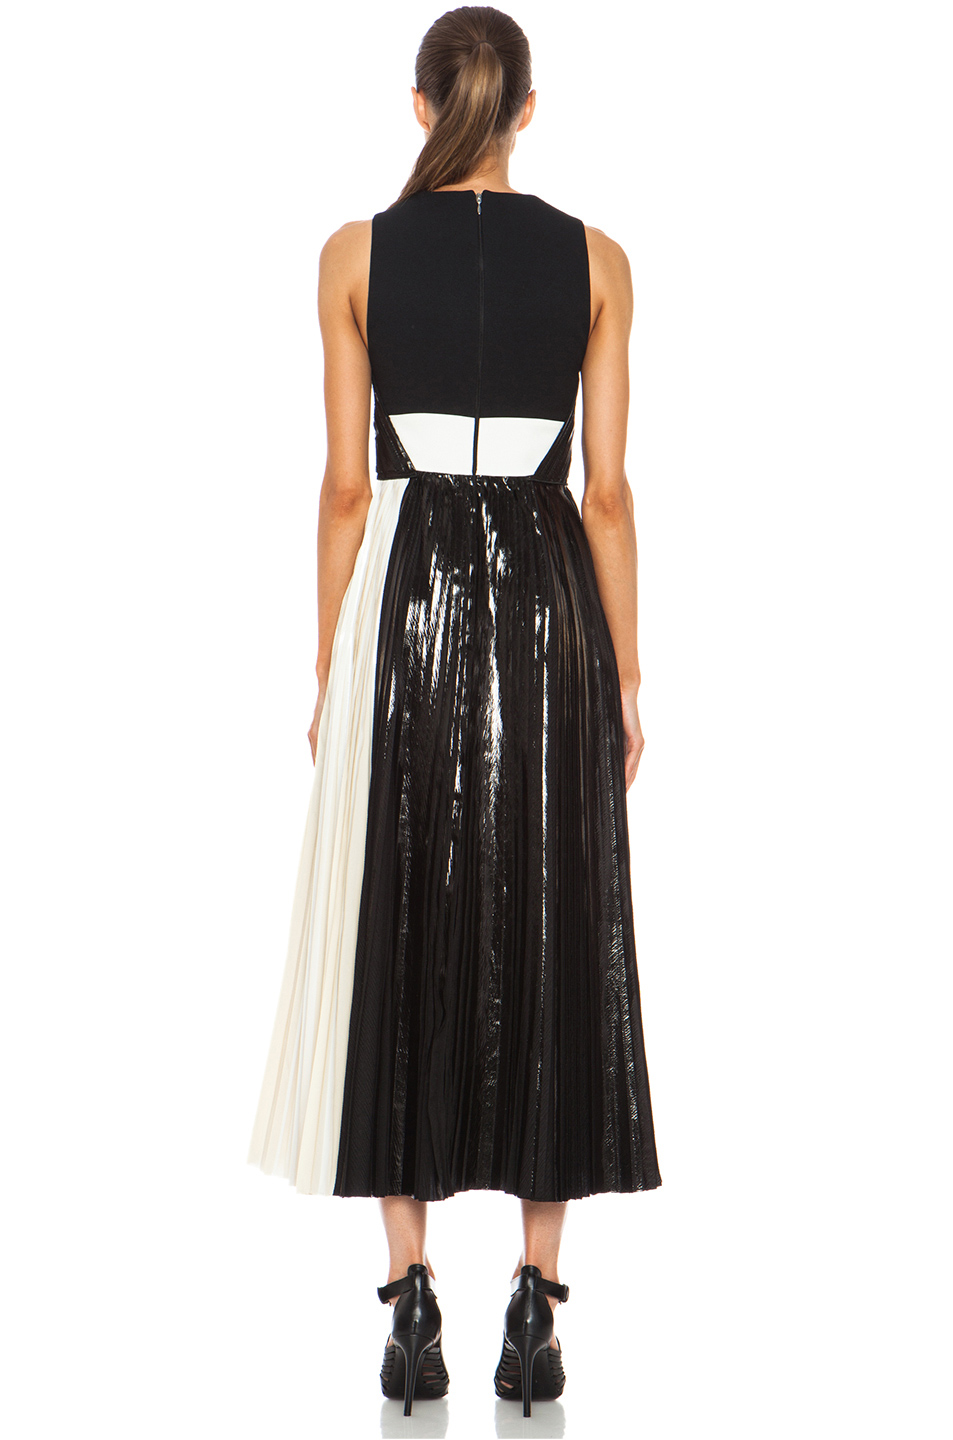 Proenza Schouler|Foil Print Poly Pleated Dress in Black, Silver & White